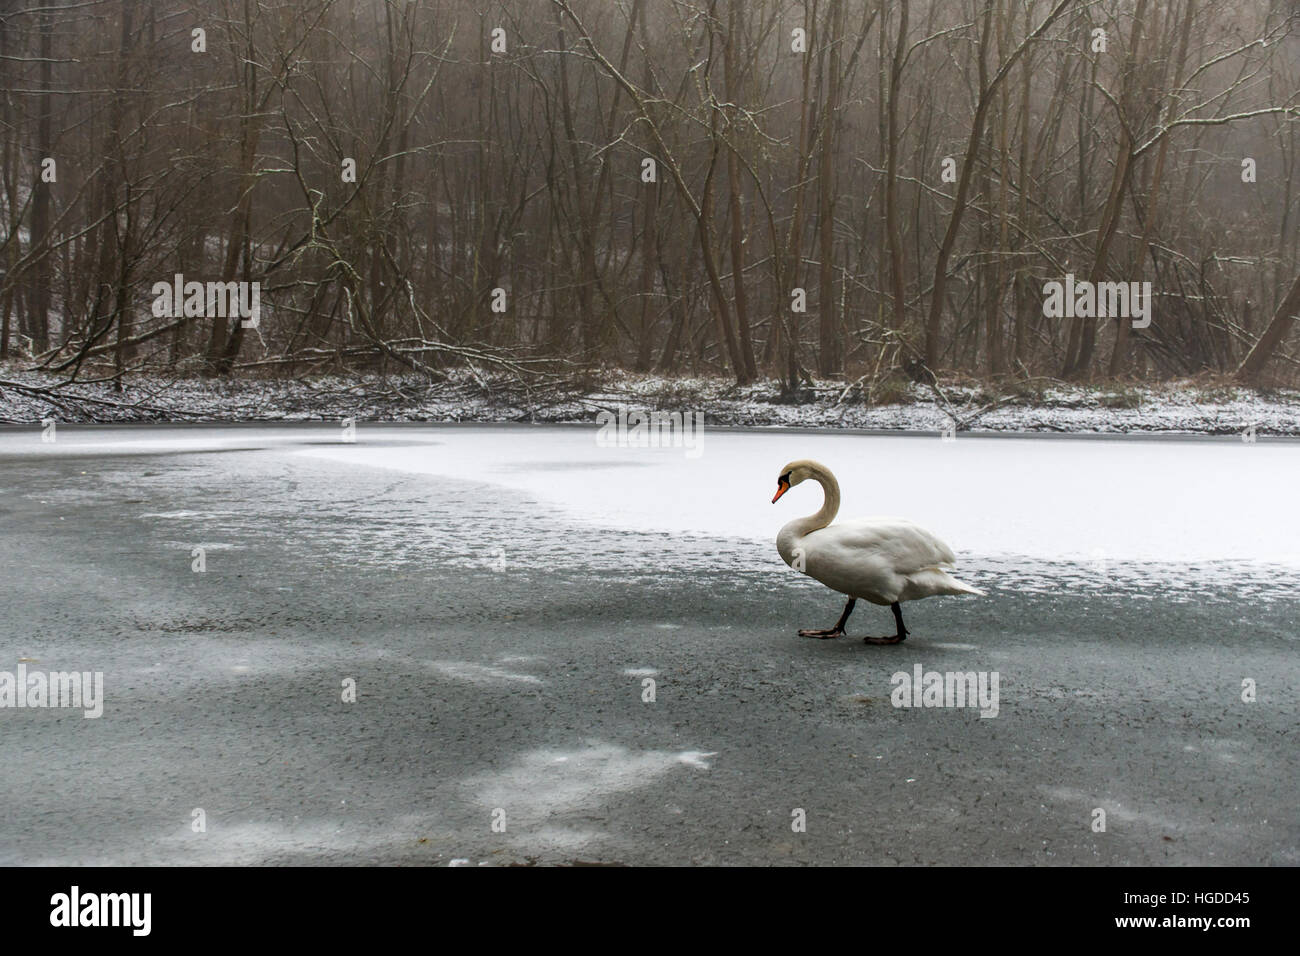 Winter Wonder Land Snow white swan Bird walking close to ice lake 22 - Stock Image